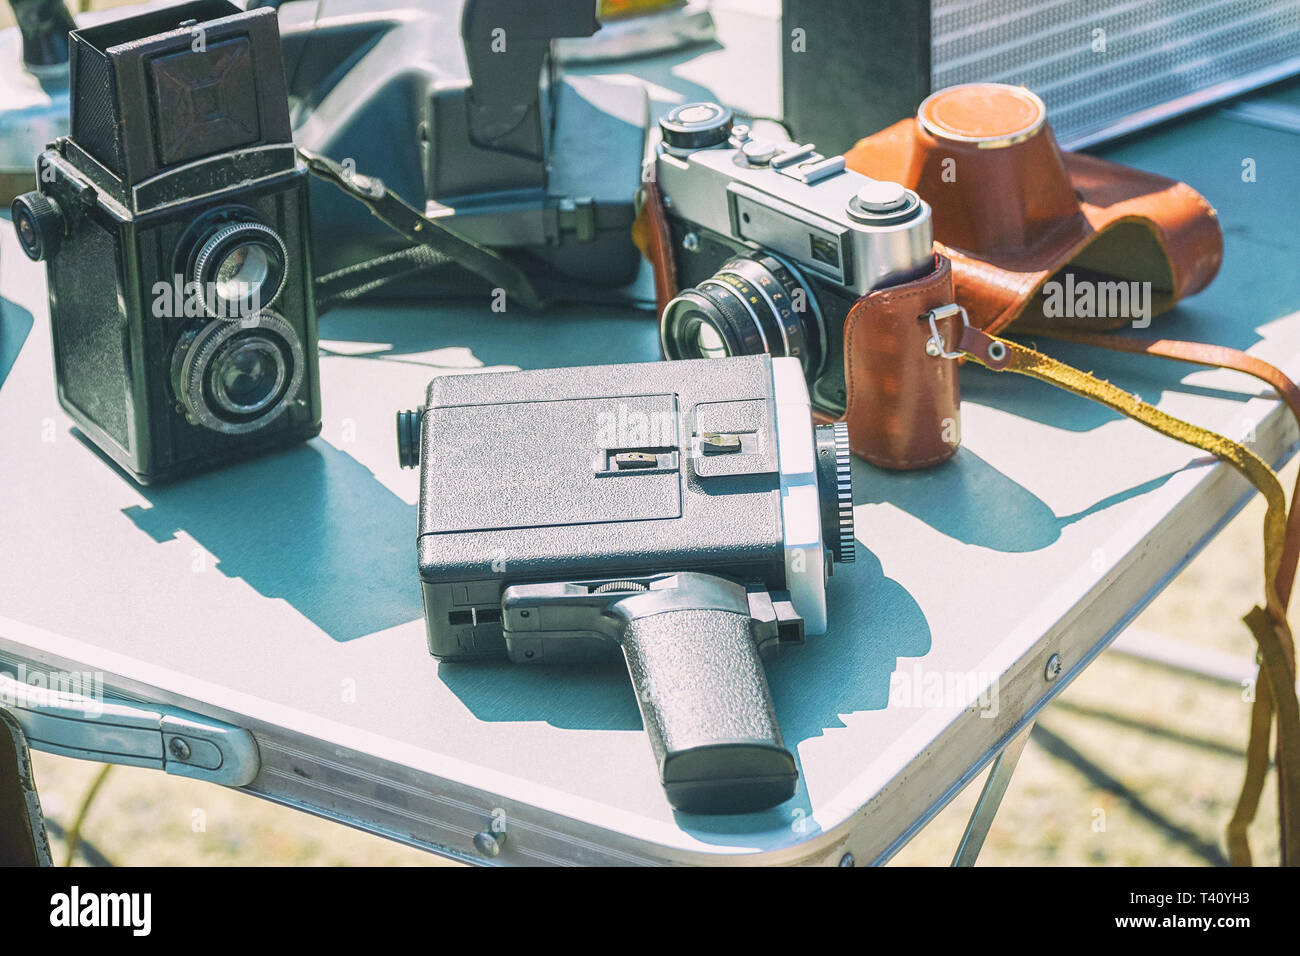 Old vintage film photographic equipment on the table. Cameras and Camcorder. Selective focus Stock Photo